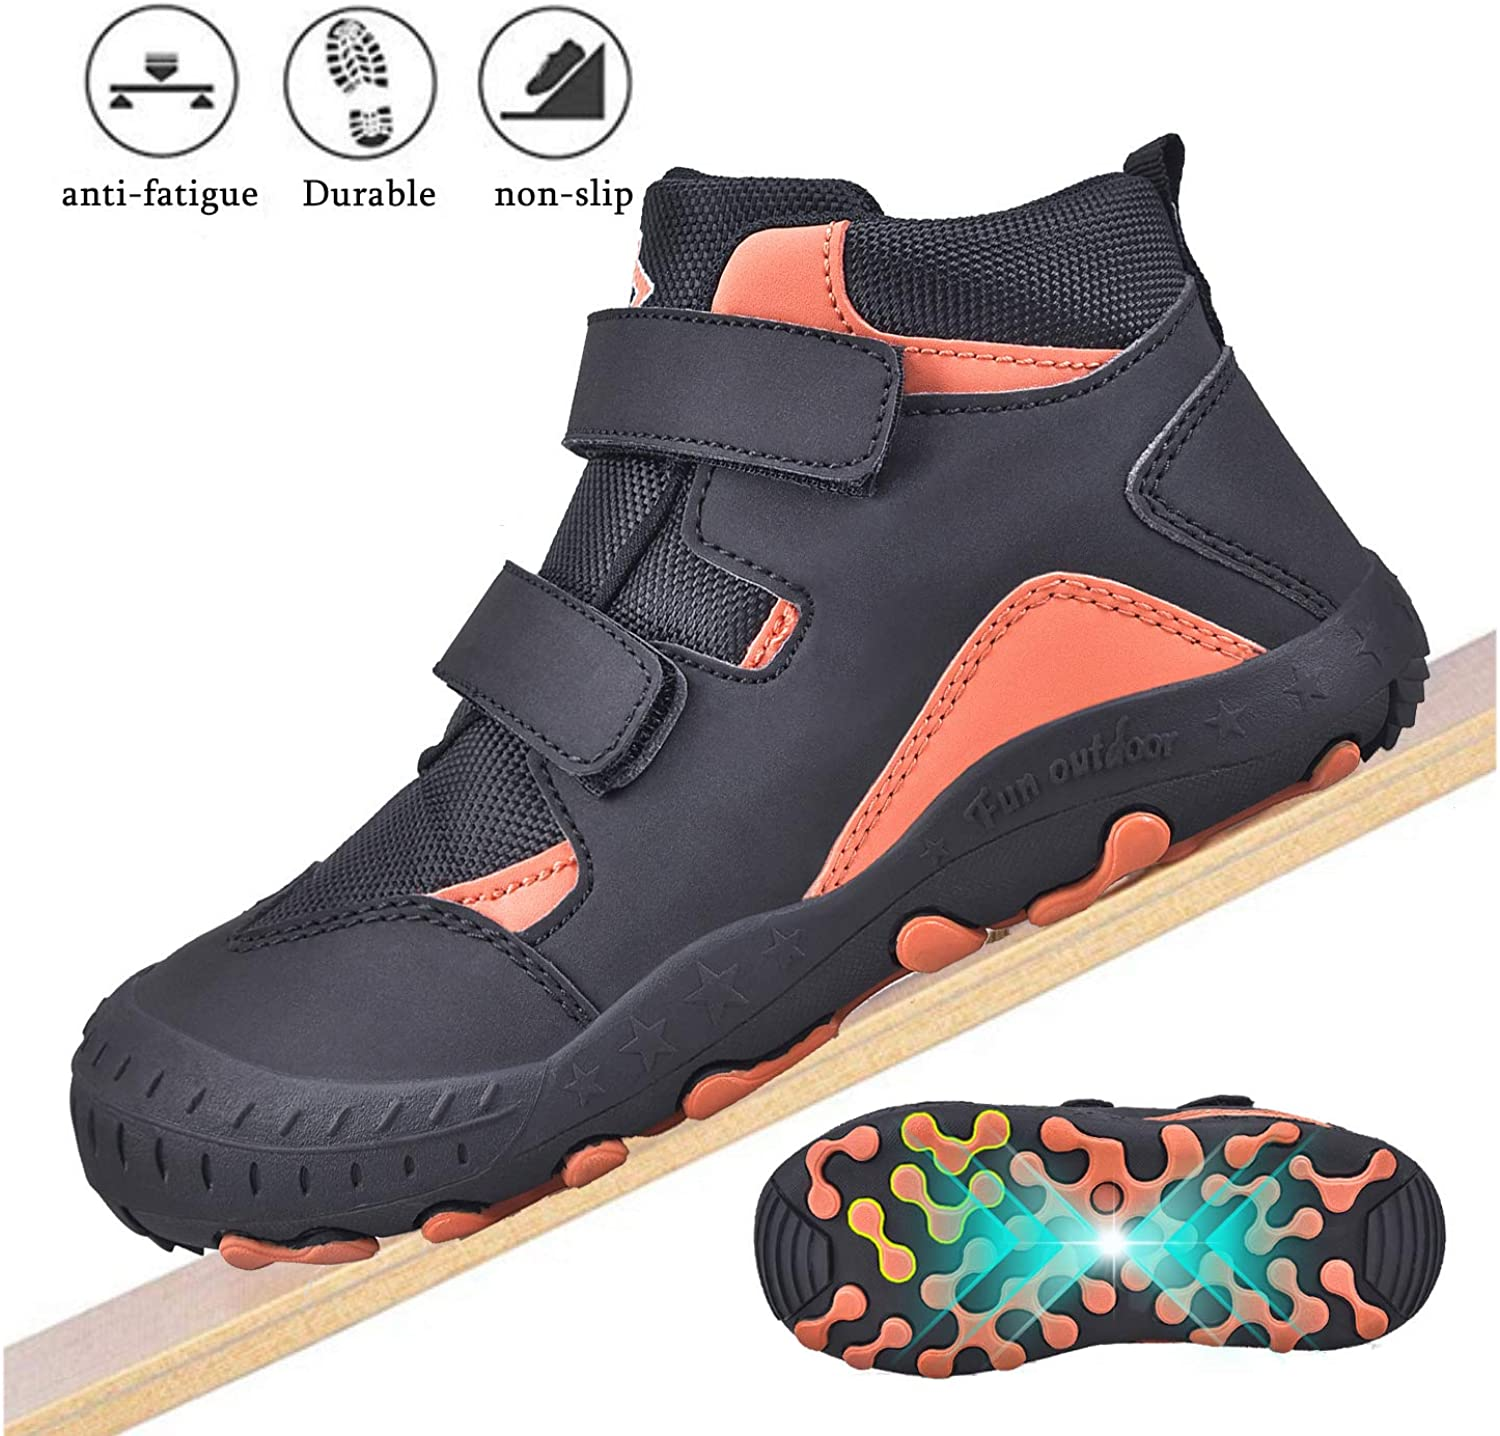 JACKSHIBO Boys Girls Ankle Hiking Boots Kids Outdoor Trekking Shoes Water Resistant Walking Sneakers for Toddler